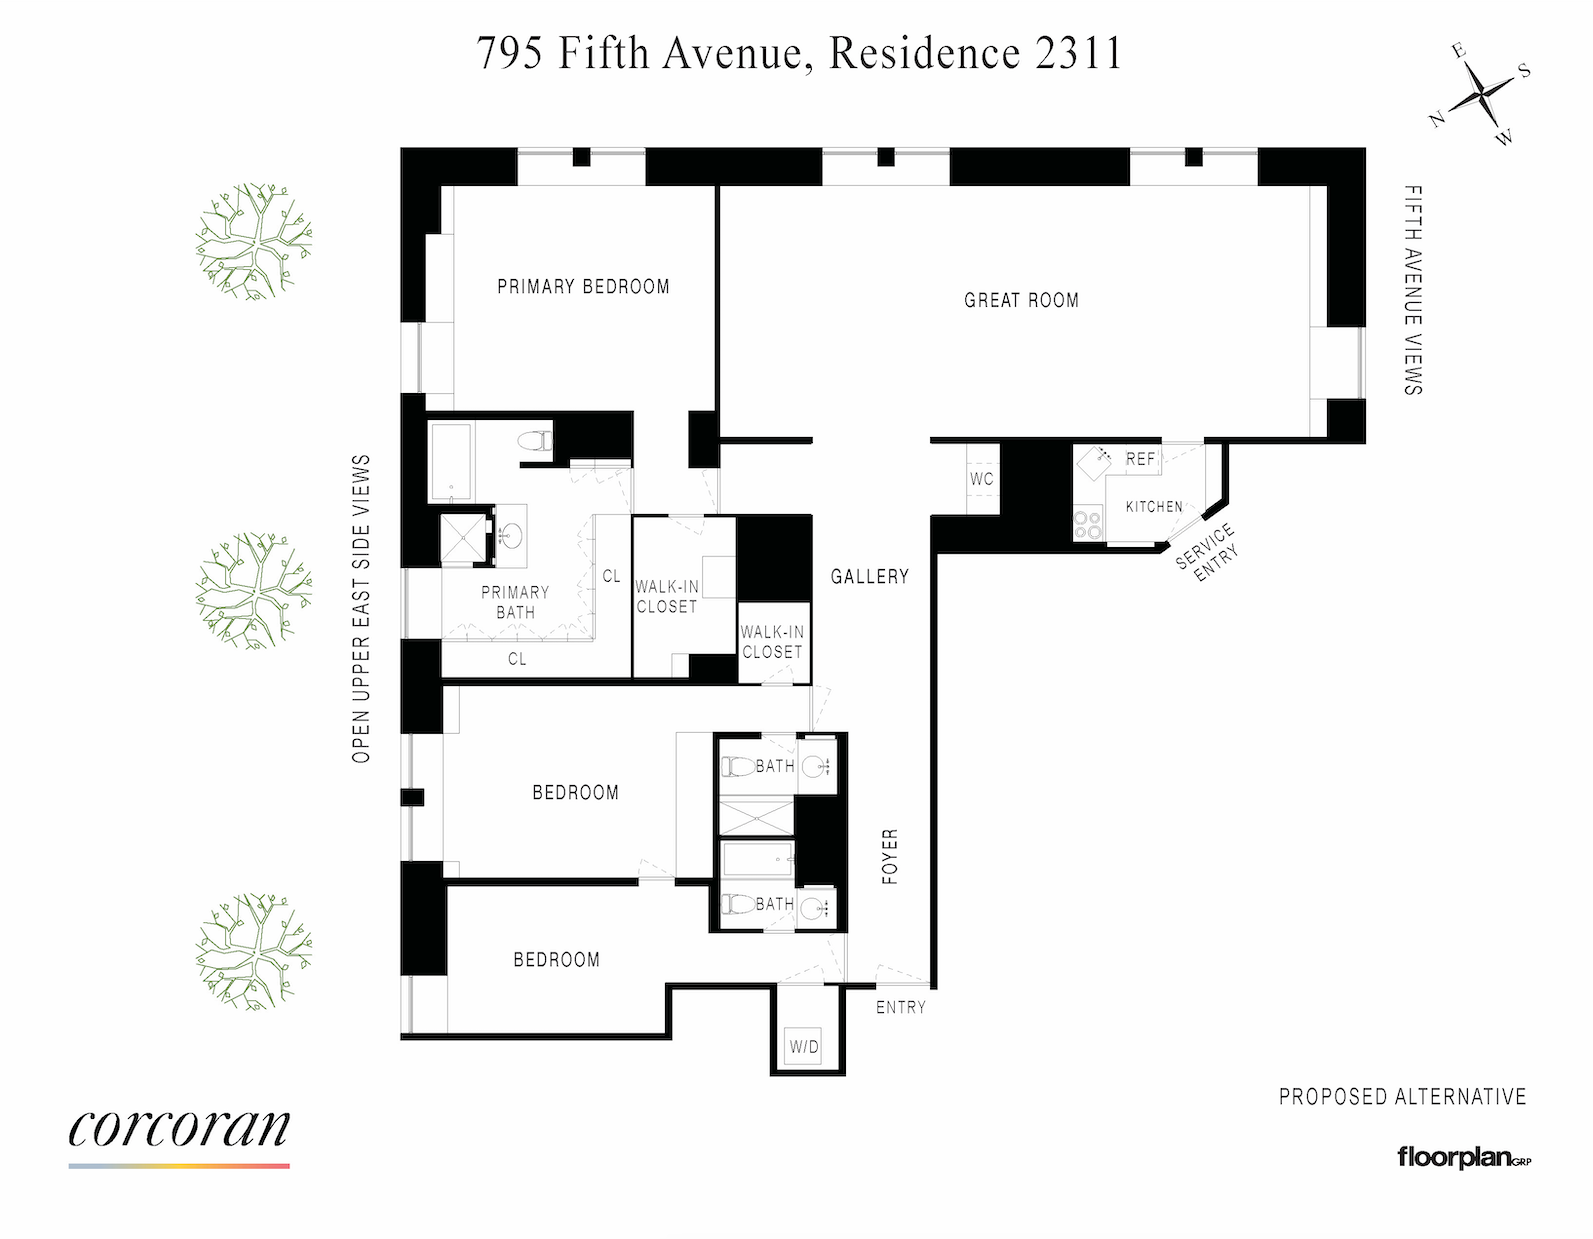 795 Fifth Avenue Upper East Side New York NY 10065